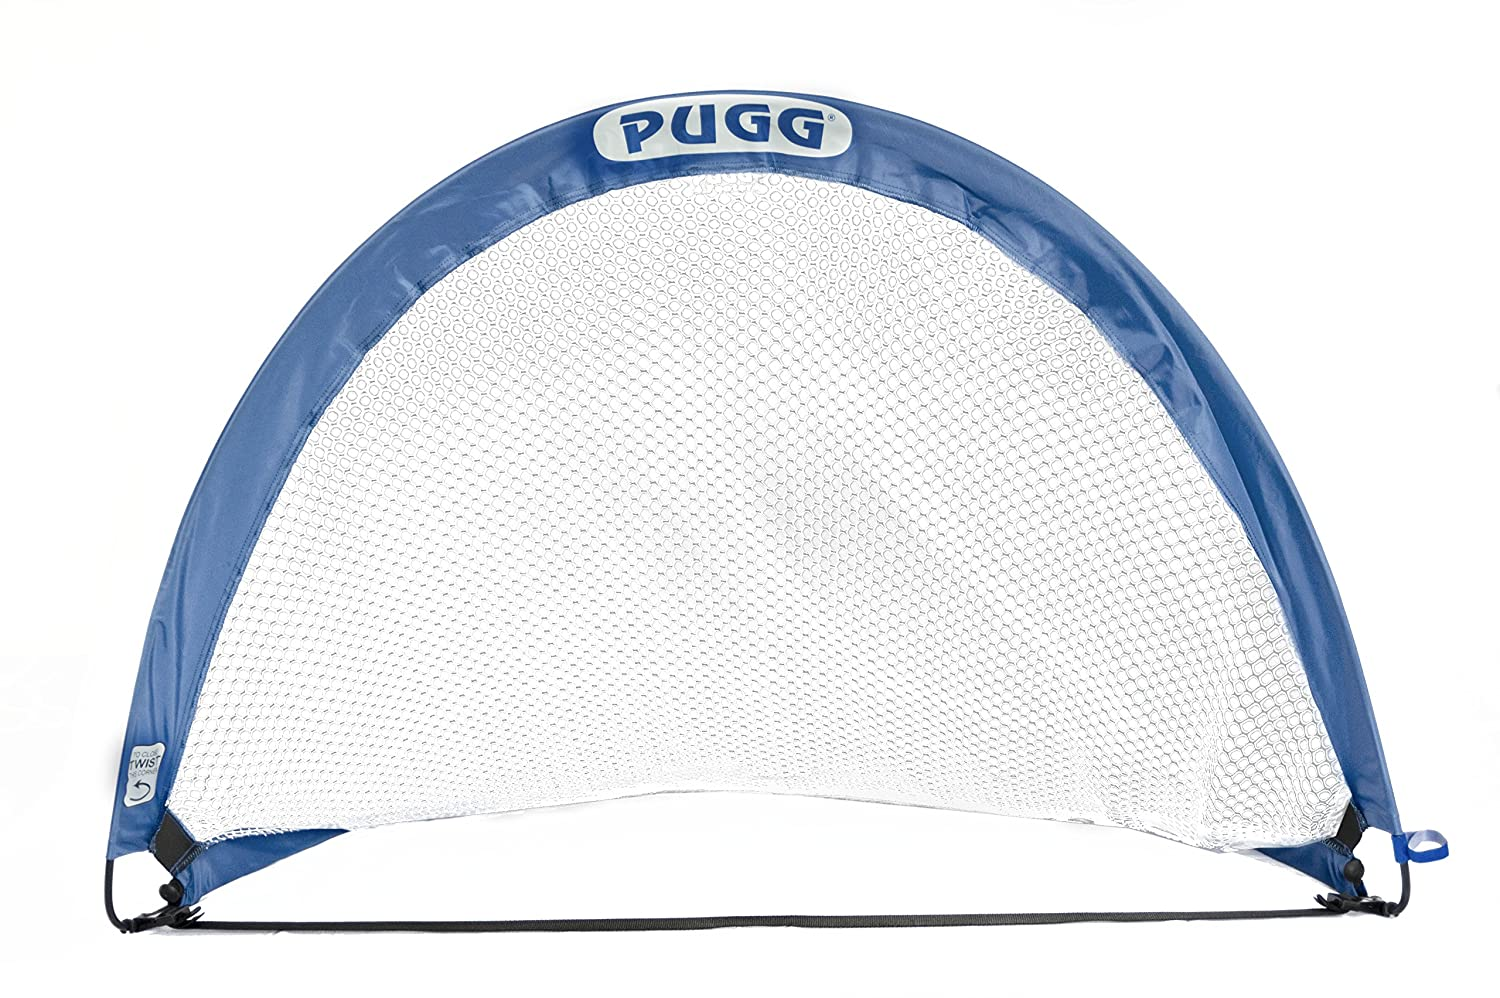 PUGG Backyard Soccer Goal